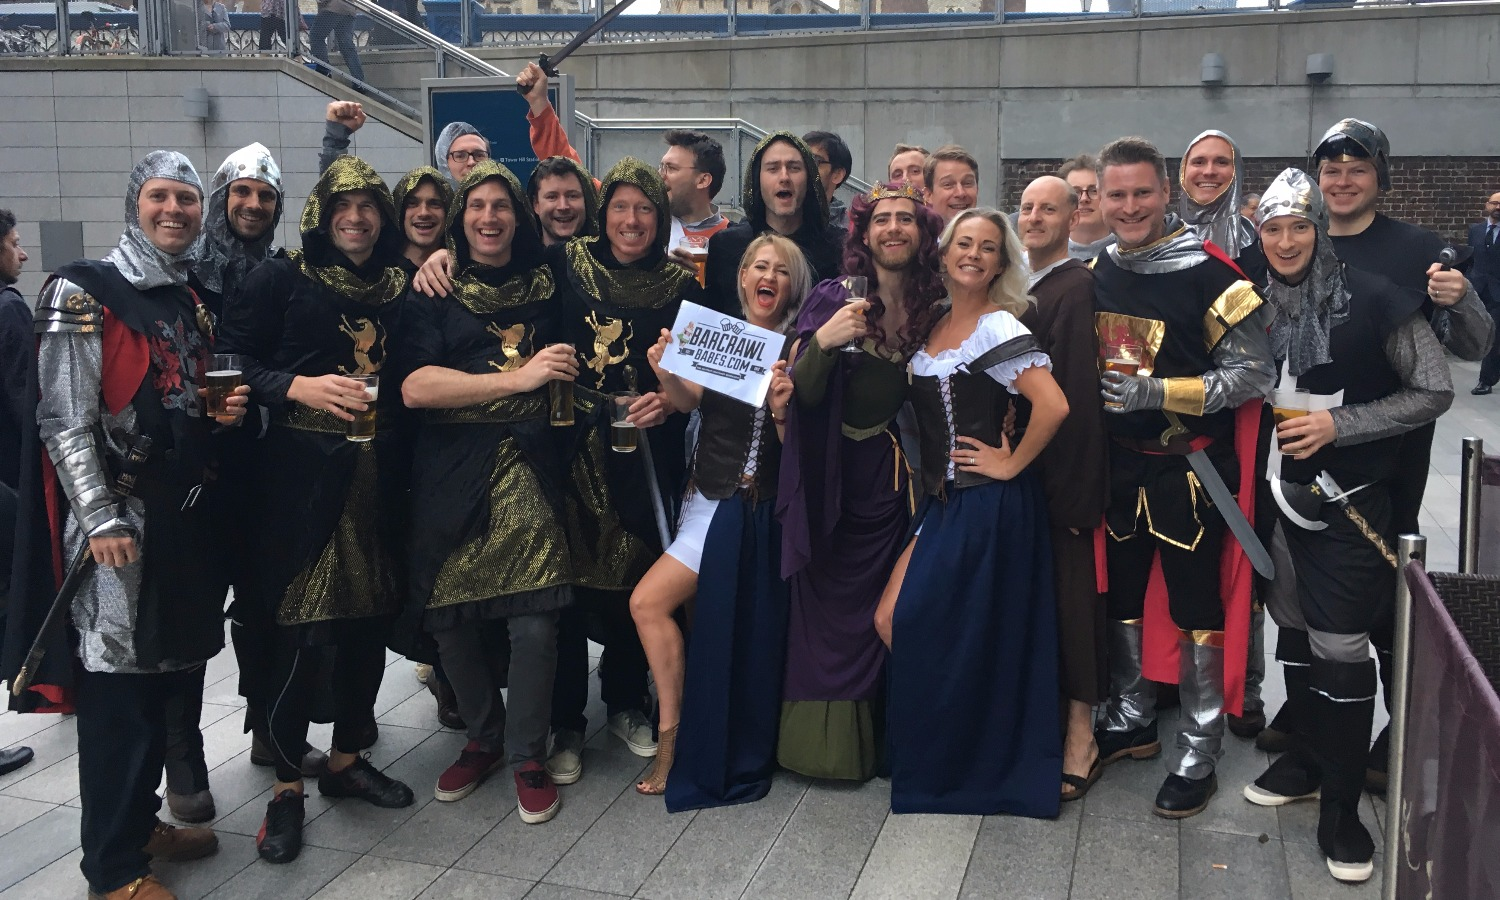 stagdo barcrawl beermaids beer wench